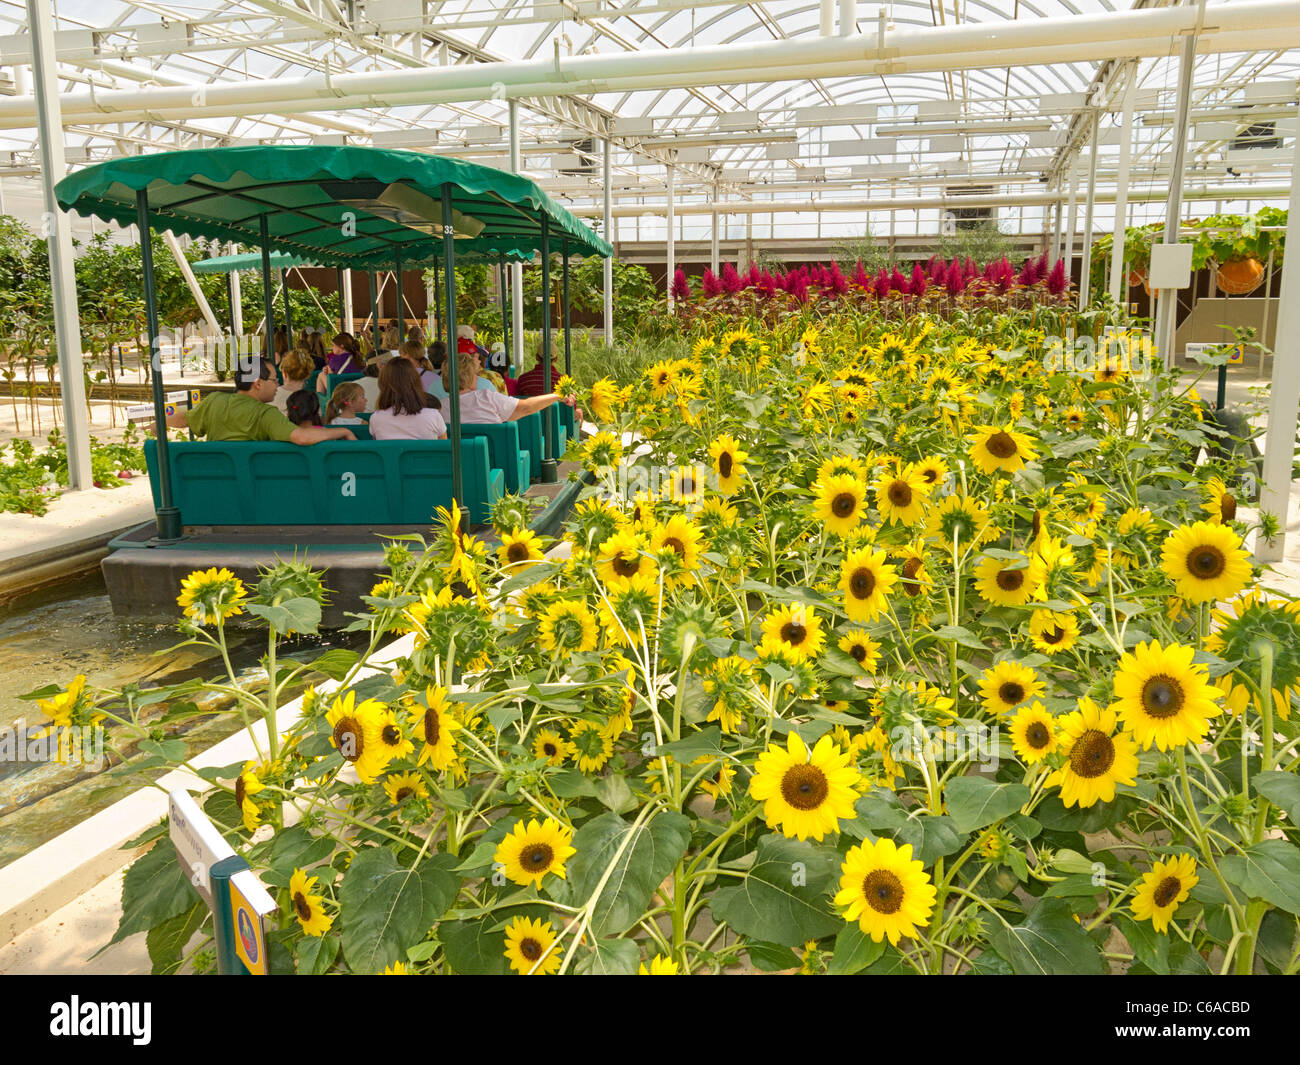 Tourists in a boat go past sunflowers at Disney World's Living With The Land attraction at the Land Pavilion, - Stock Image